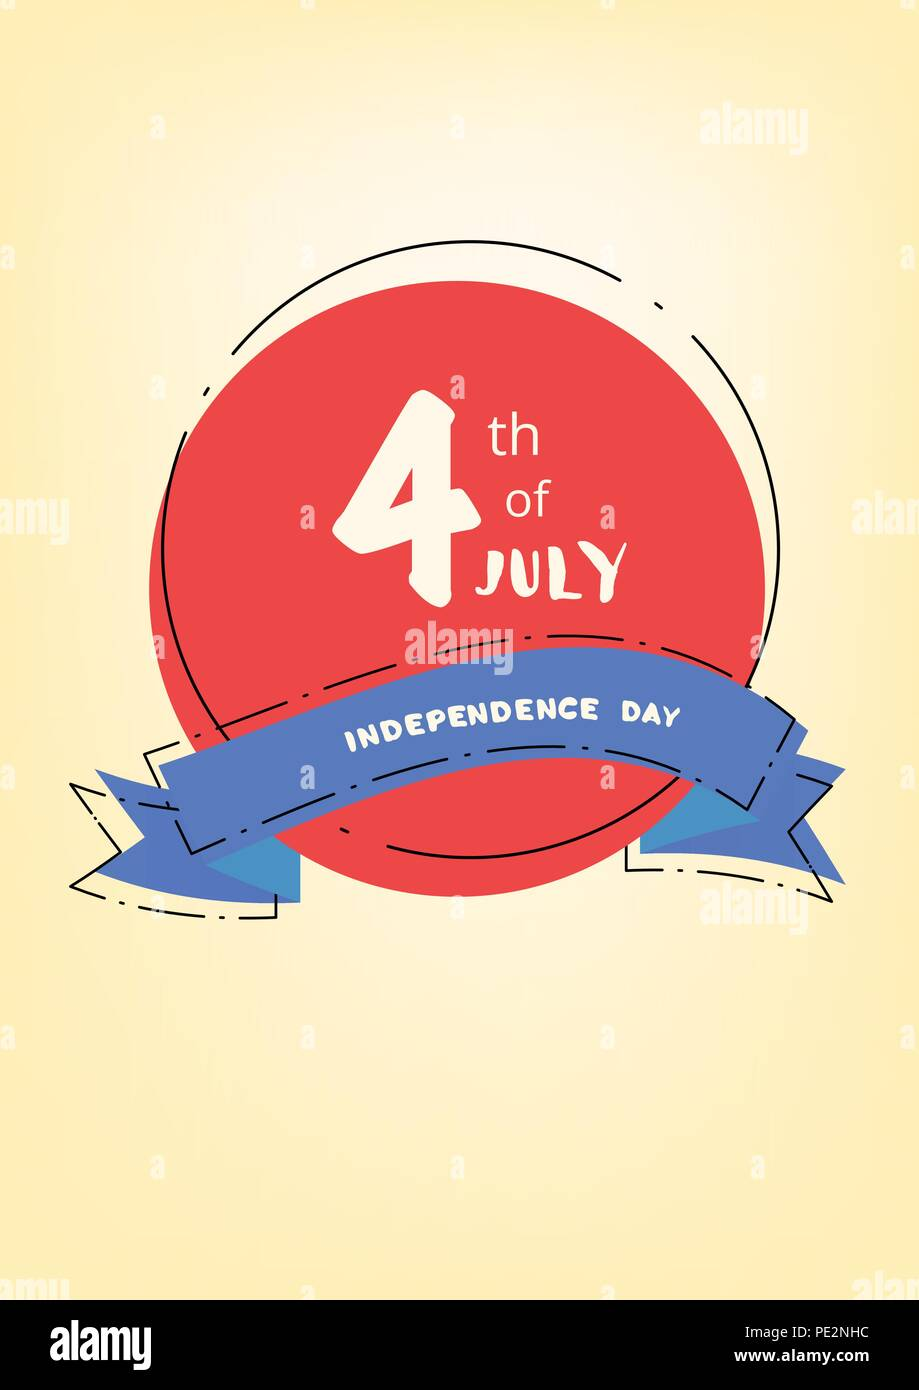 Happy Independence Banners Customized Banners